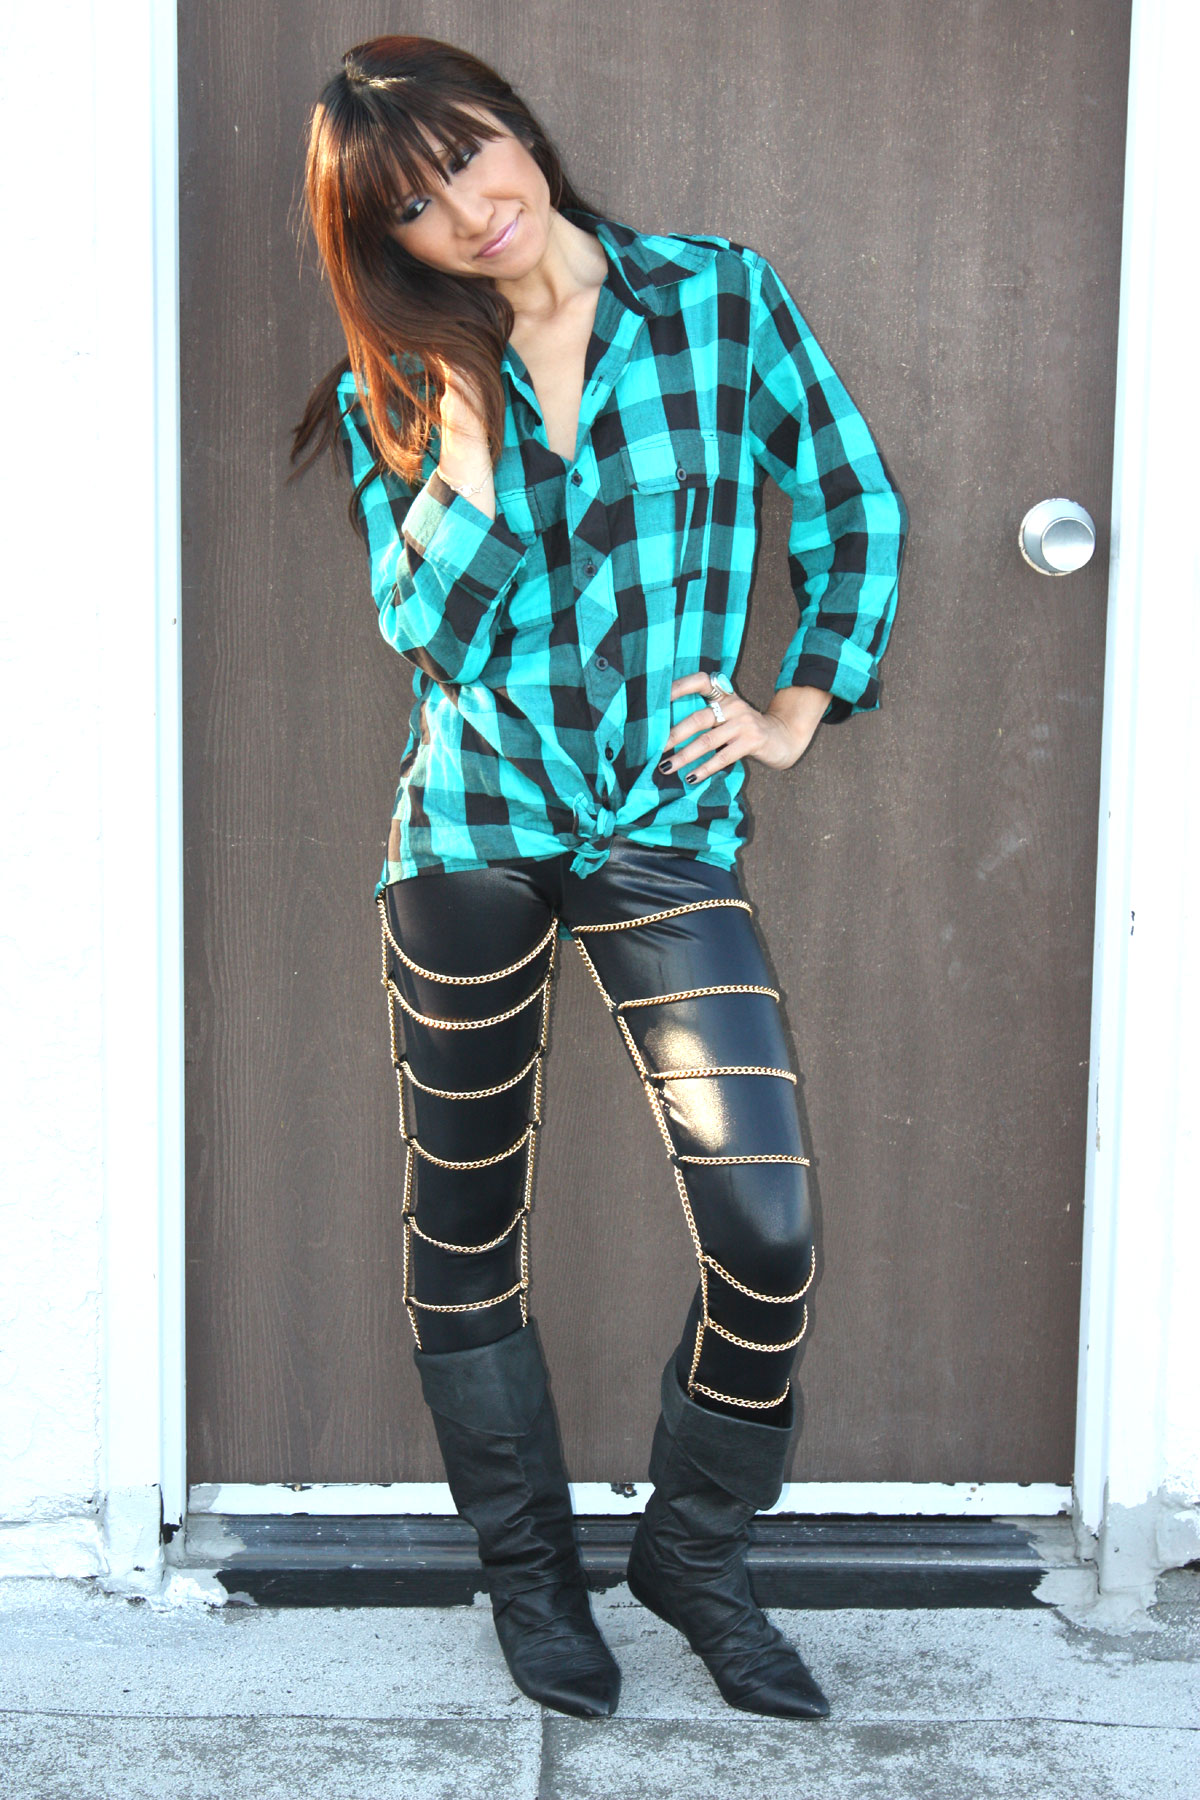 Leggings And Boots http://icaneducation.ca/silk.php?q=leggings-and-boots-pictures